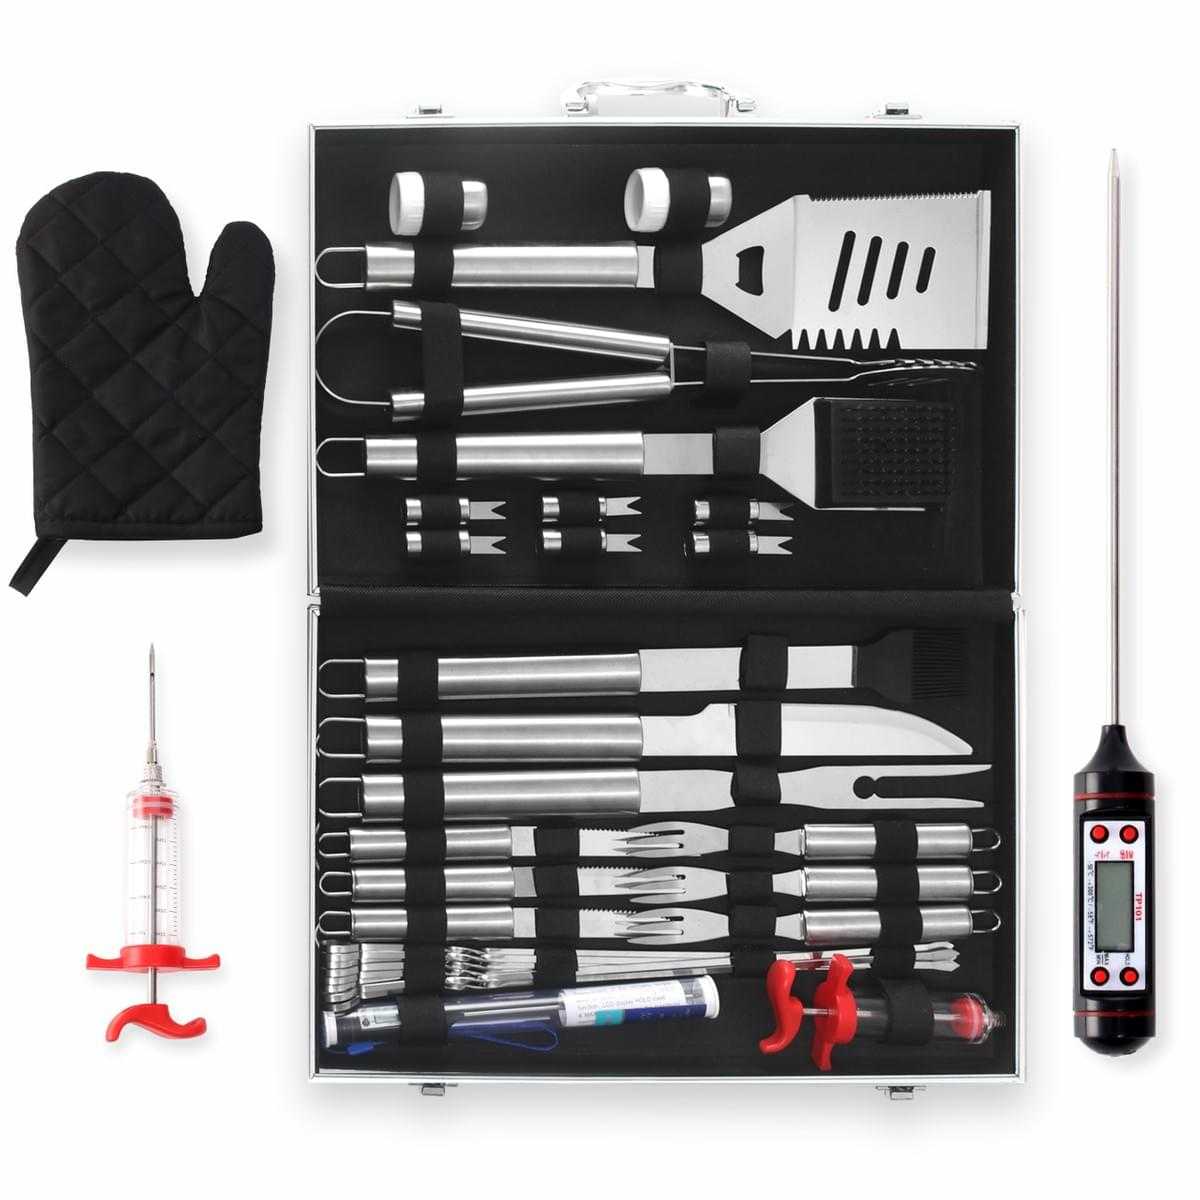 SENDAIST Heavy Duty Stainless Steel BBQ Tools Professional Grilling Accessories, 32 Piece Grilling Utensil Set